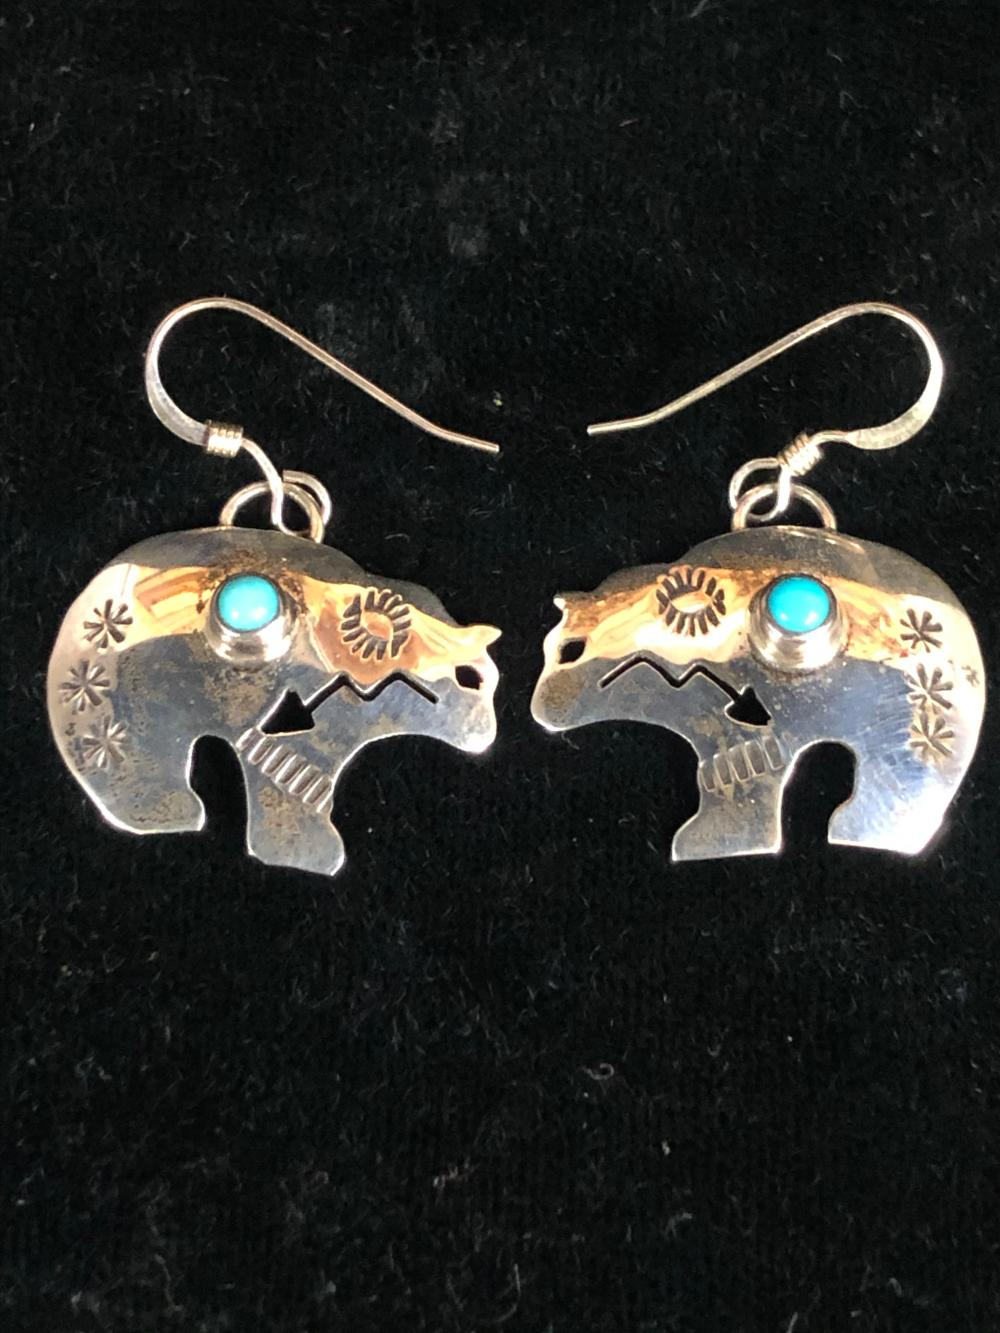 Bear shaped sterling silver earrings with turquoise stone